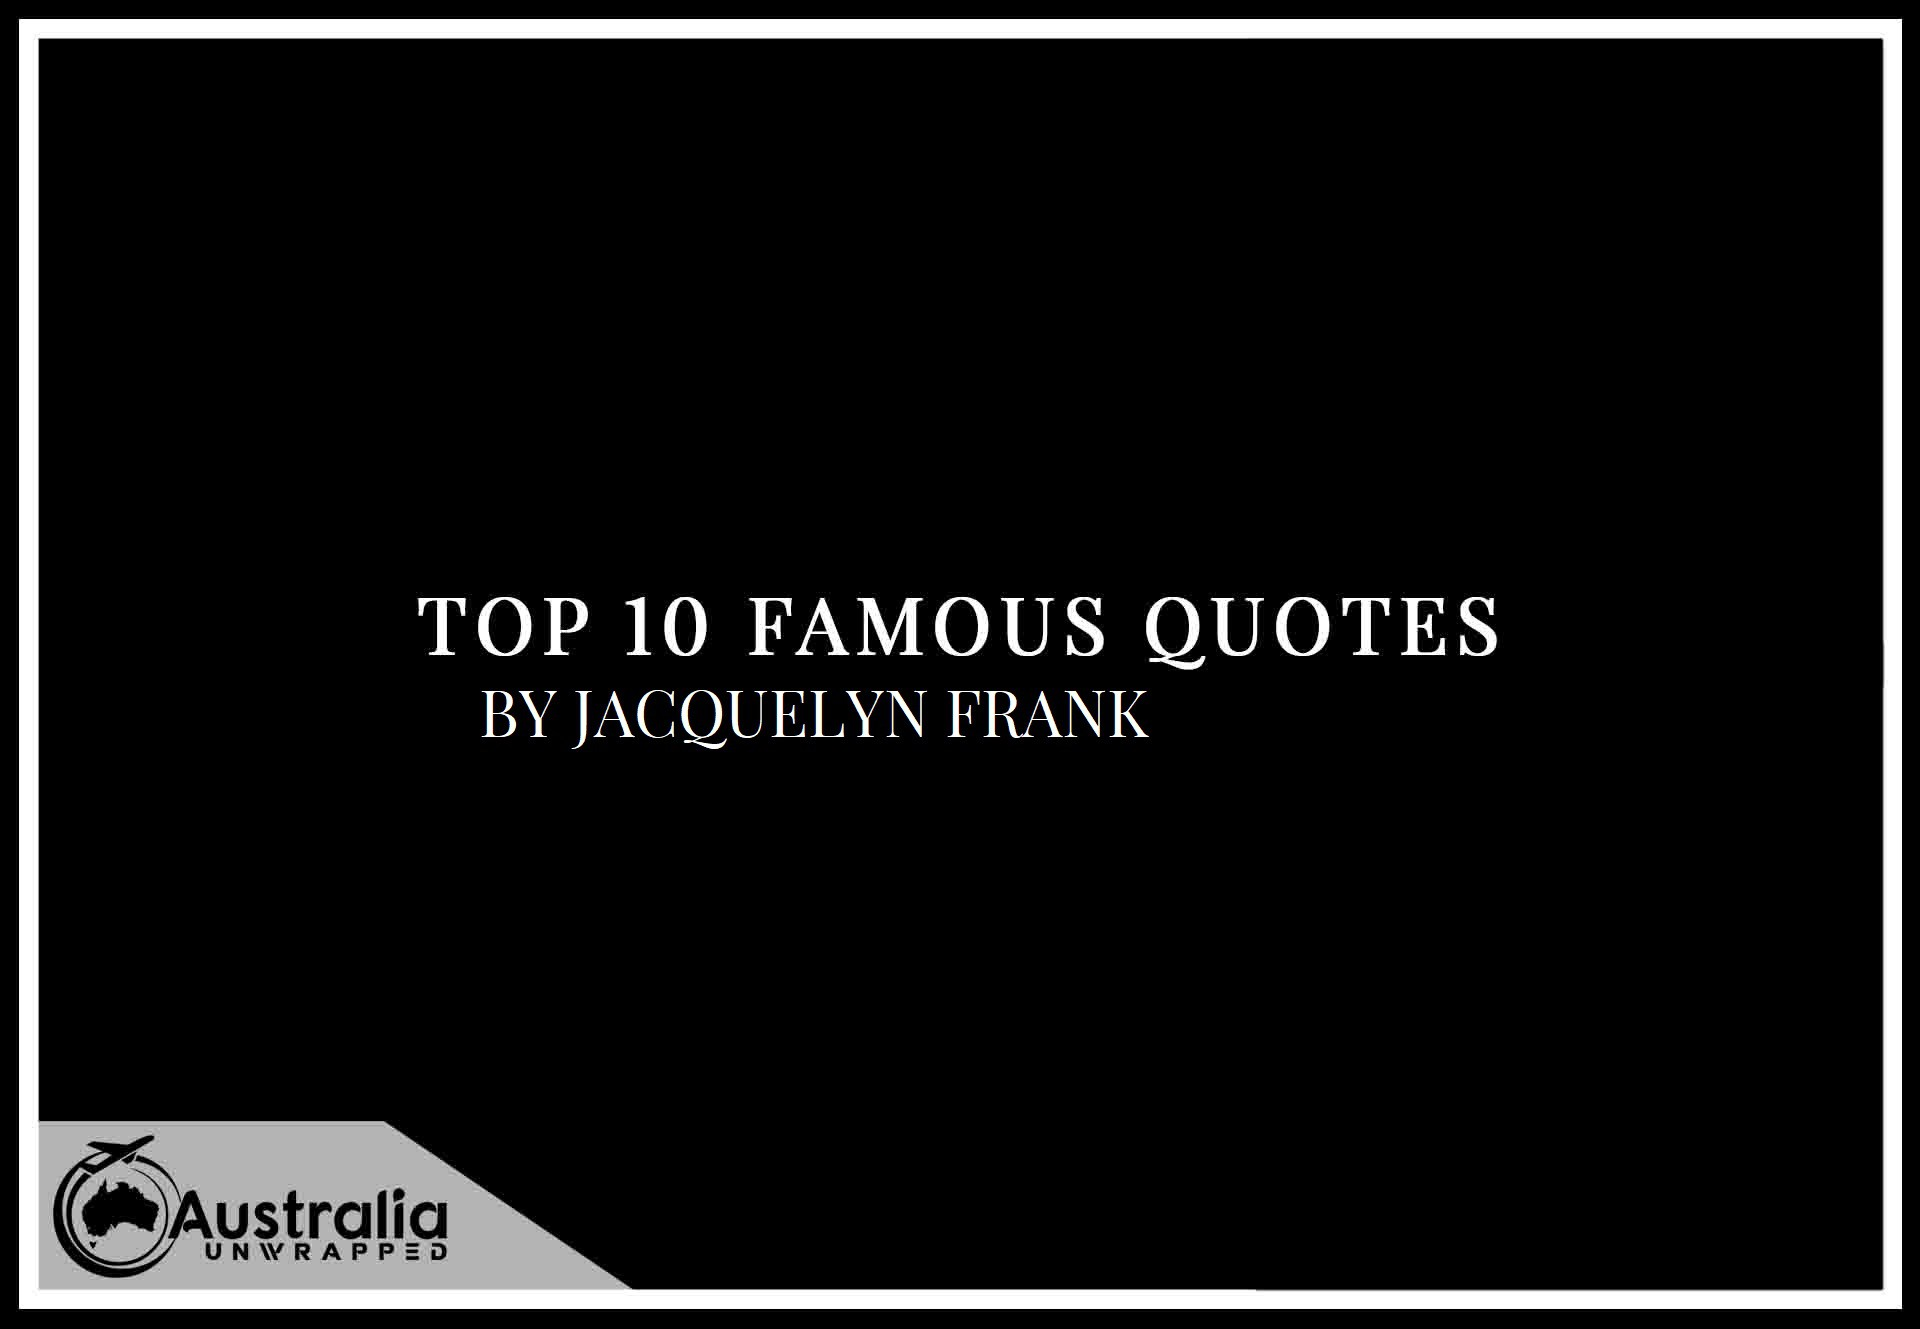 Top 10 Famous Quotes by Author Jacquelyn Frank